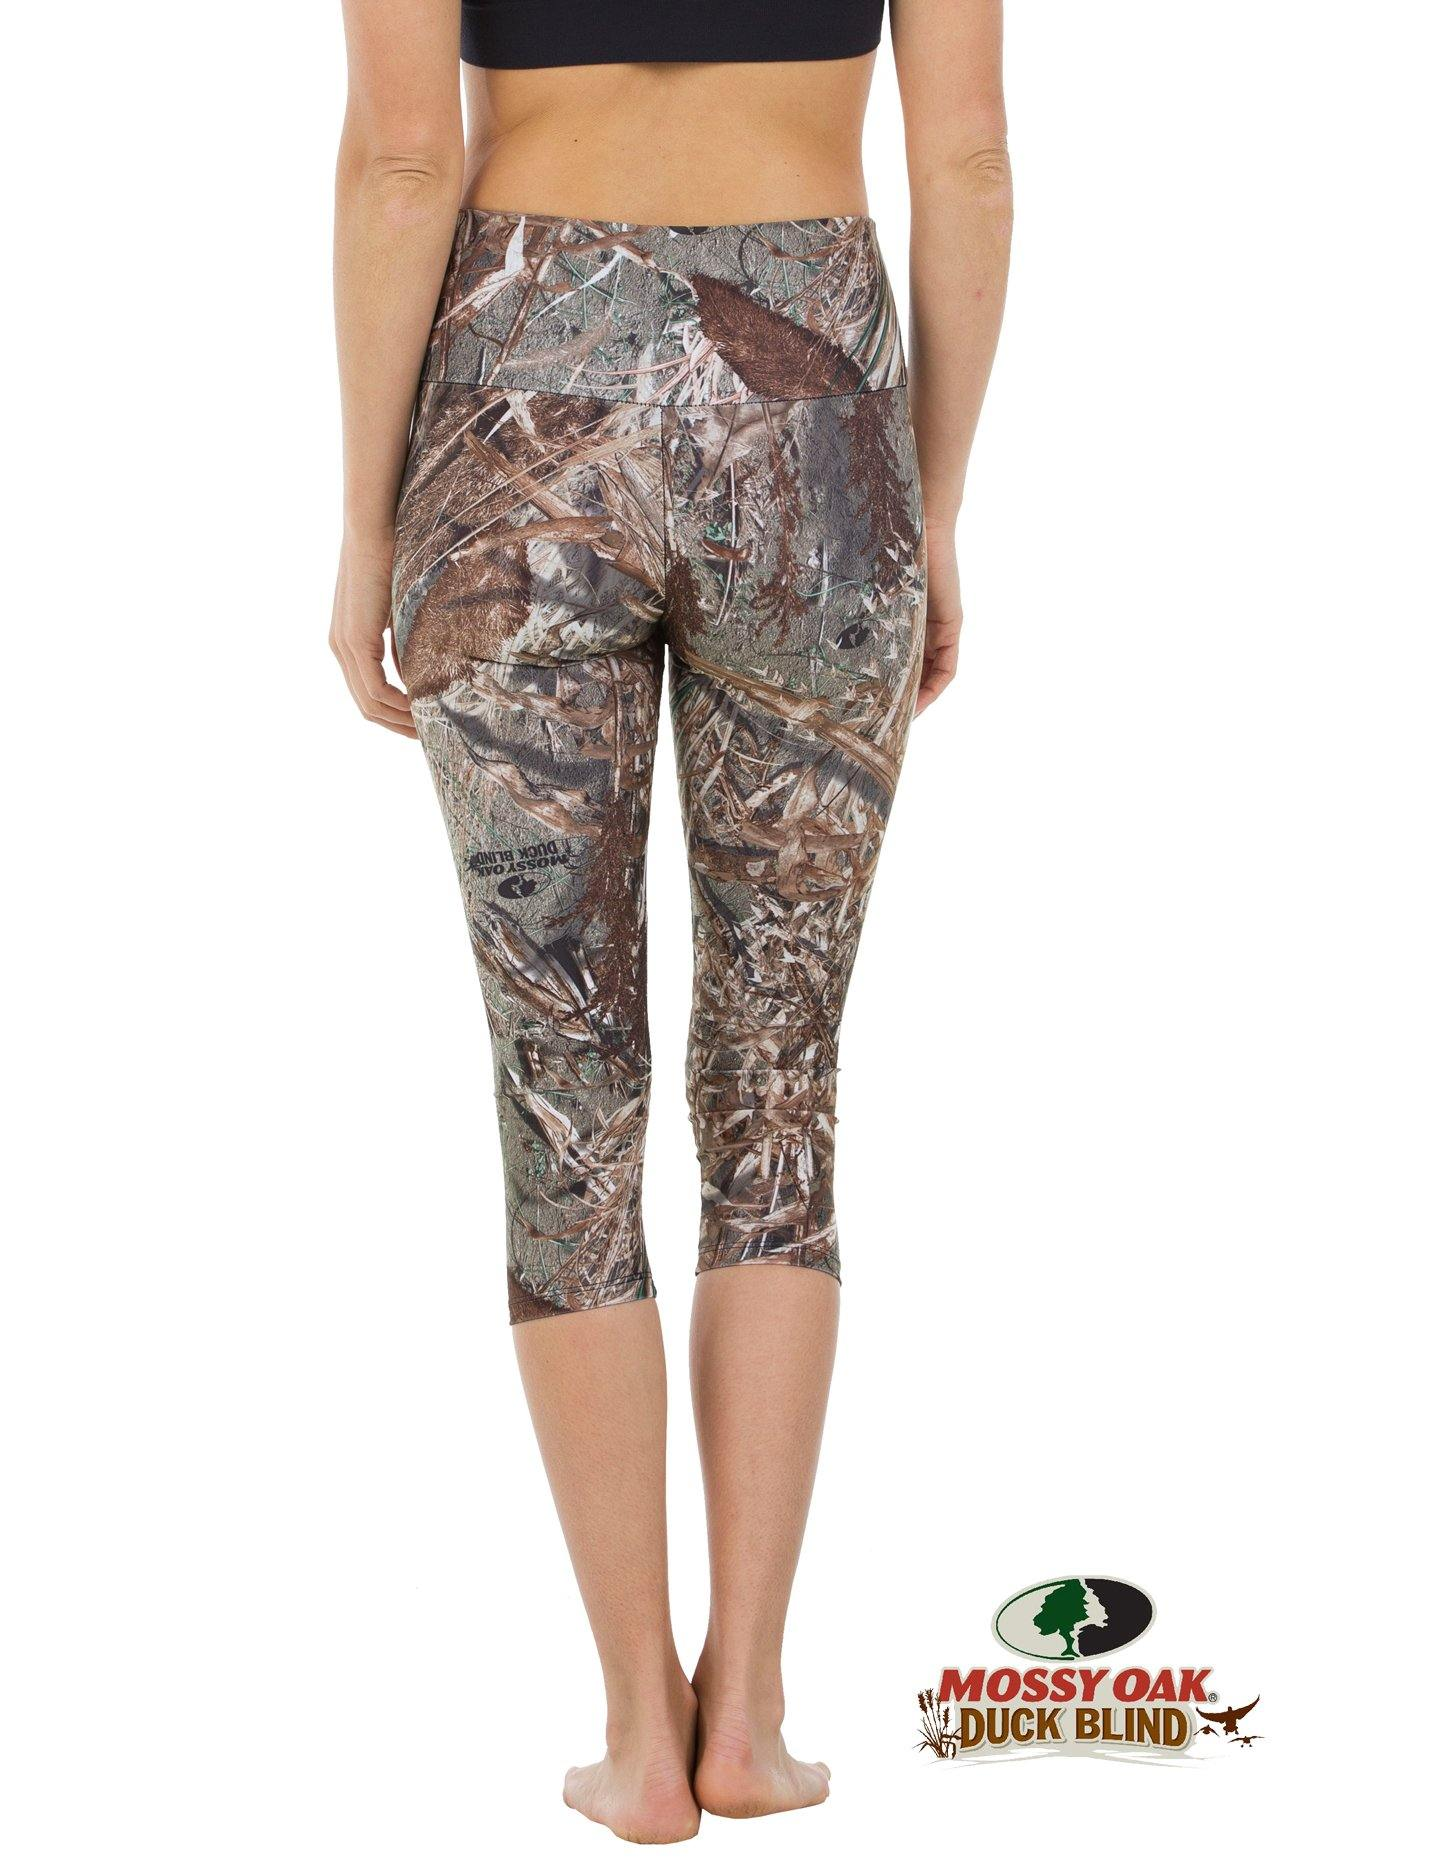 Apsara Leggings High Waist Capri, Mossy Oak Duck Blind